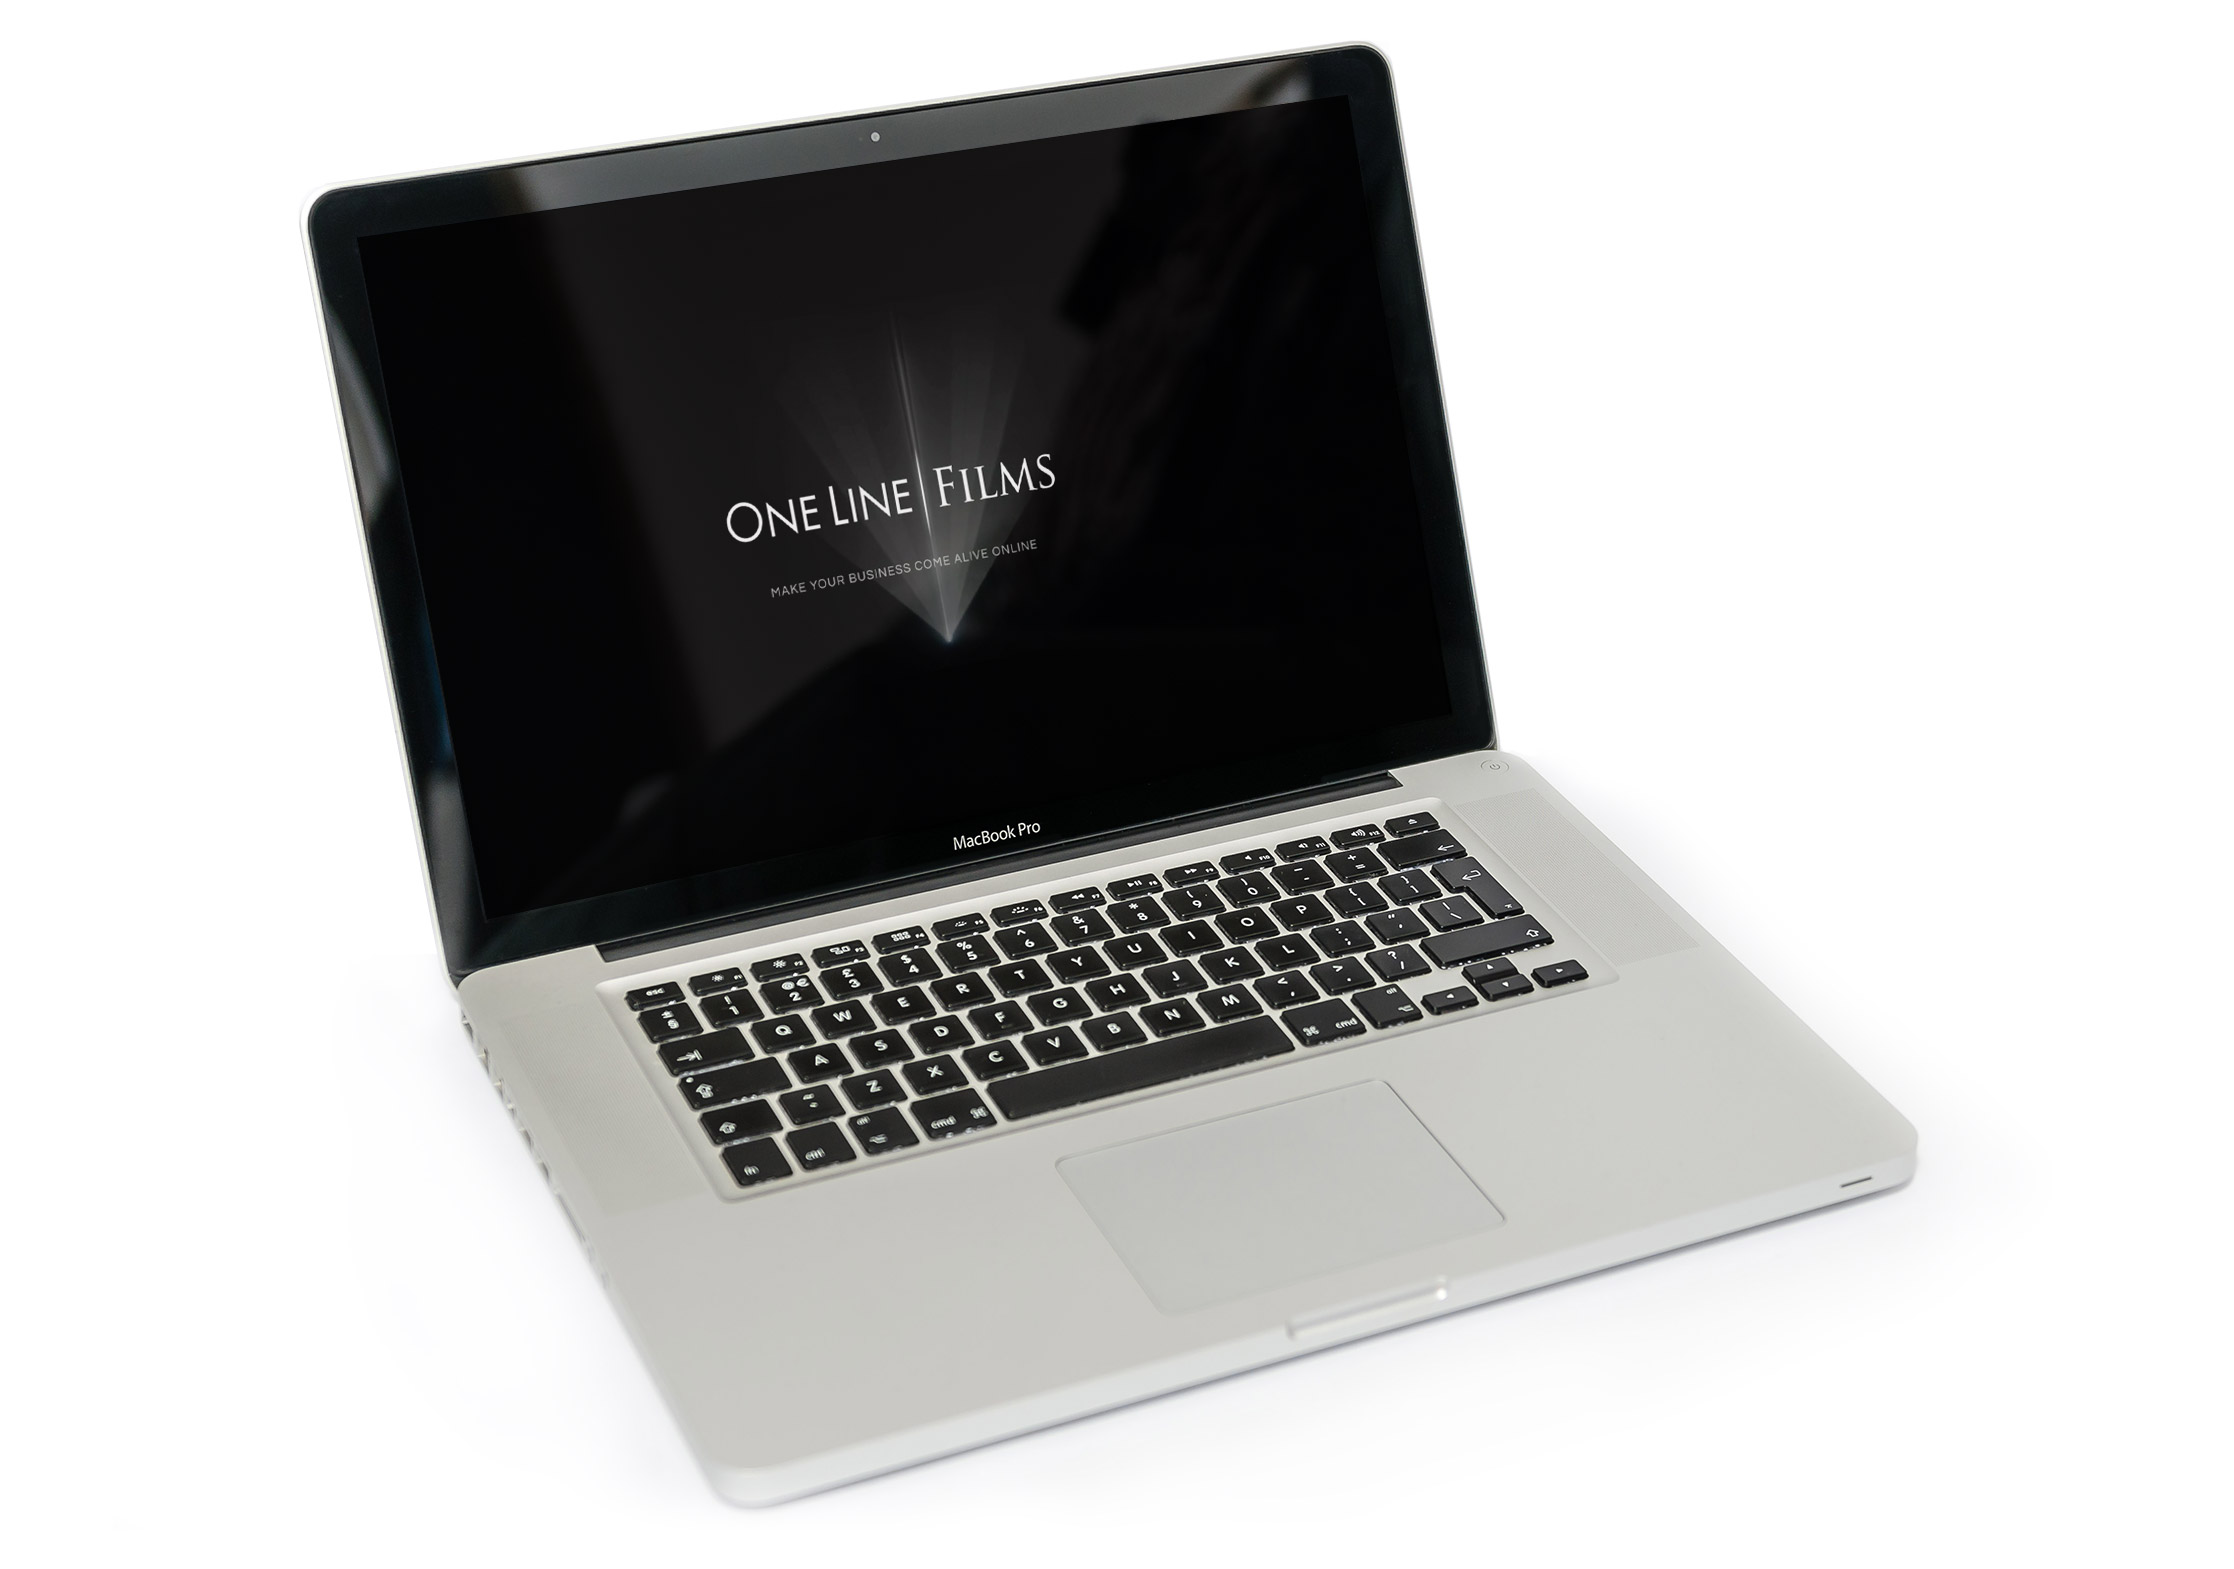 OneLine-web-macbook